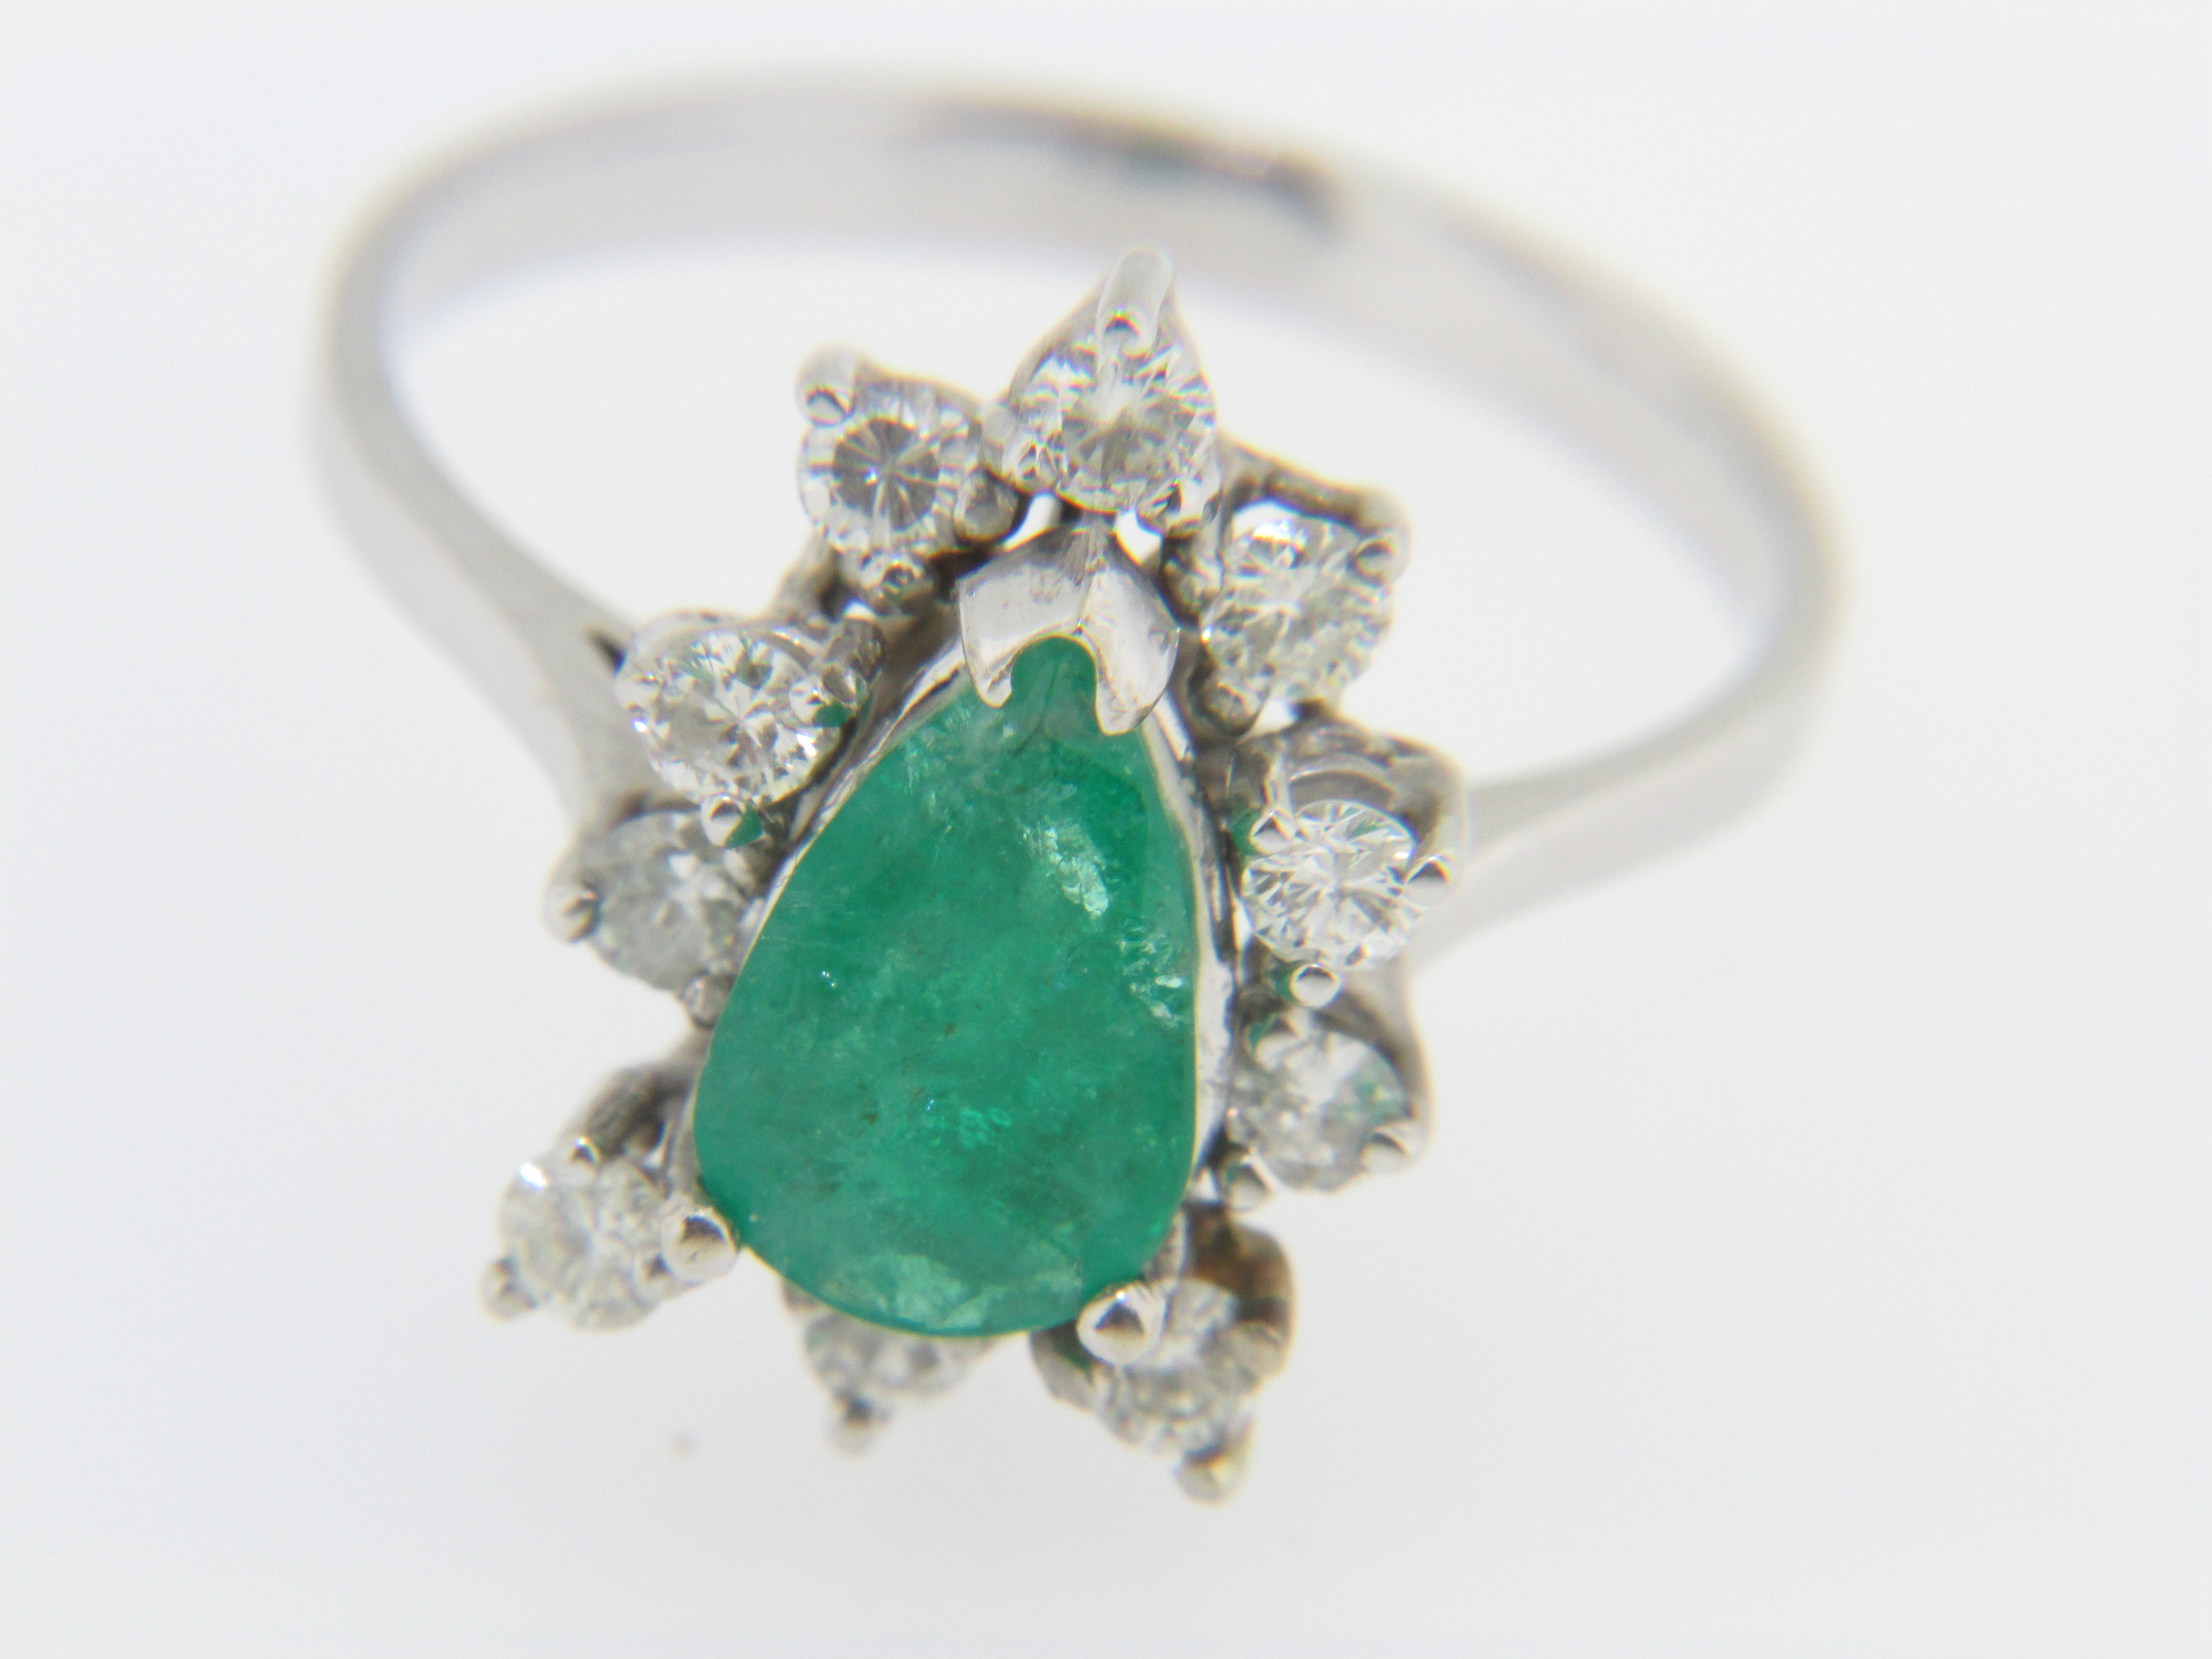 Vintage Pear Cut Emerald And Round Diamond Estate Ring 14k White Gold Size 6.5